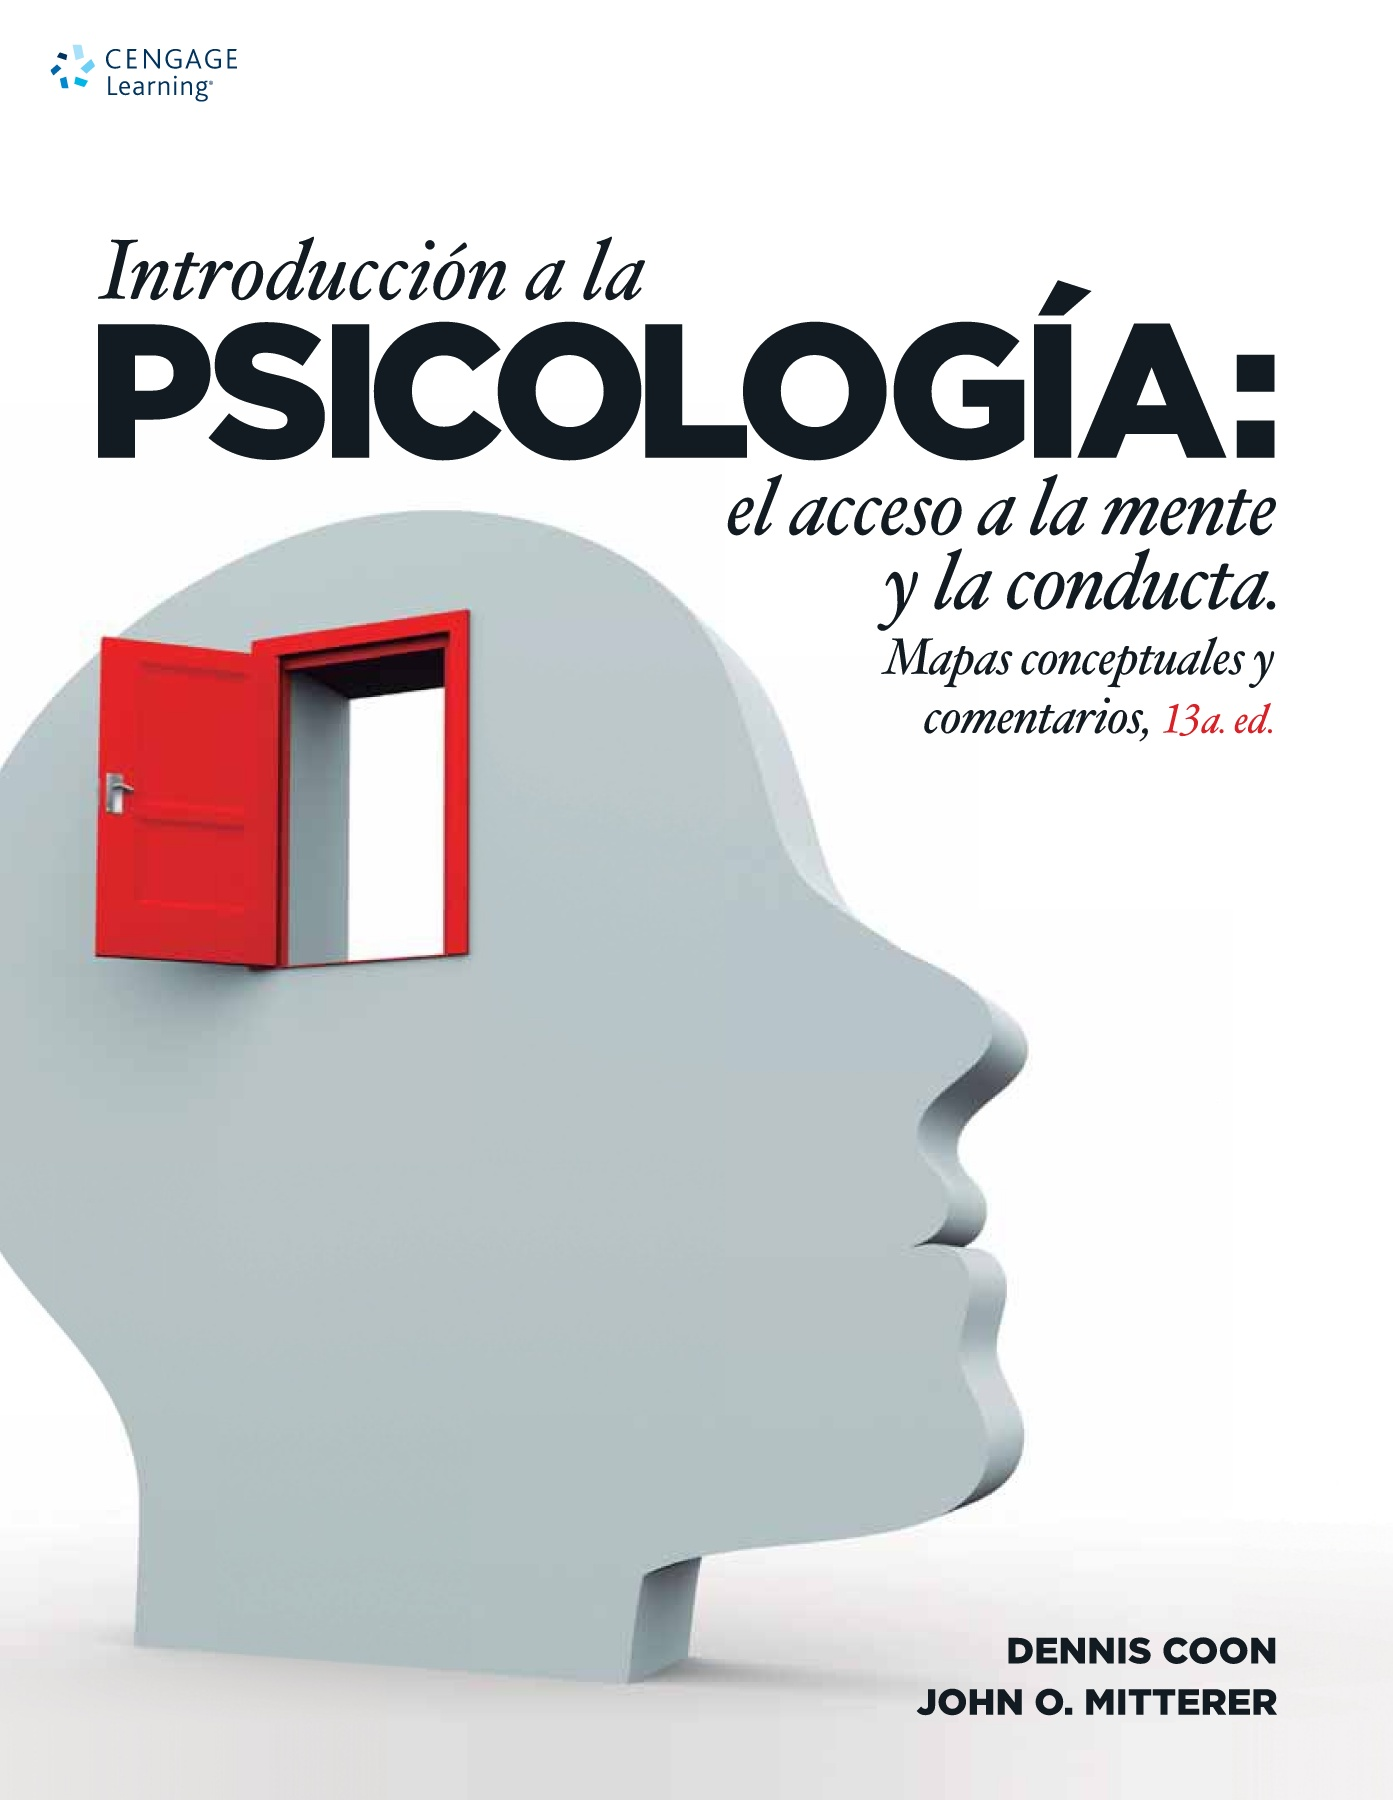 Introducci N A La Psicolog A Pages 701 750 Text Version